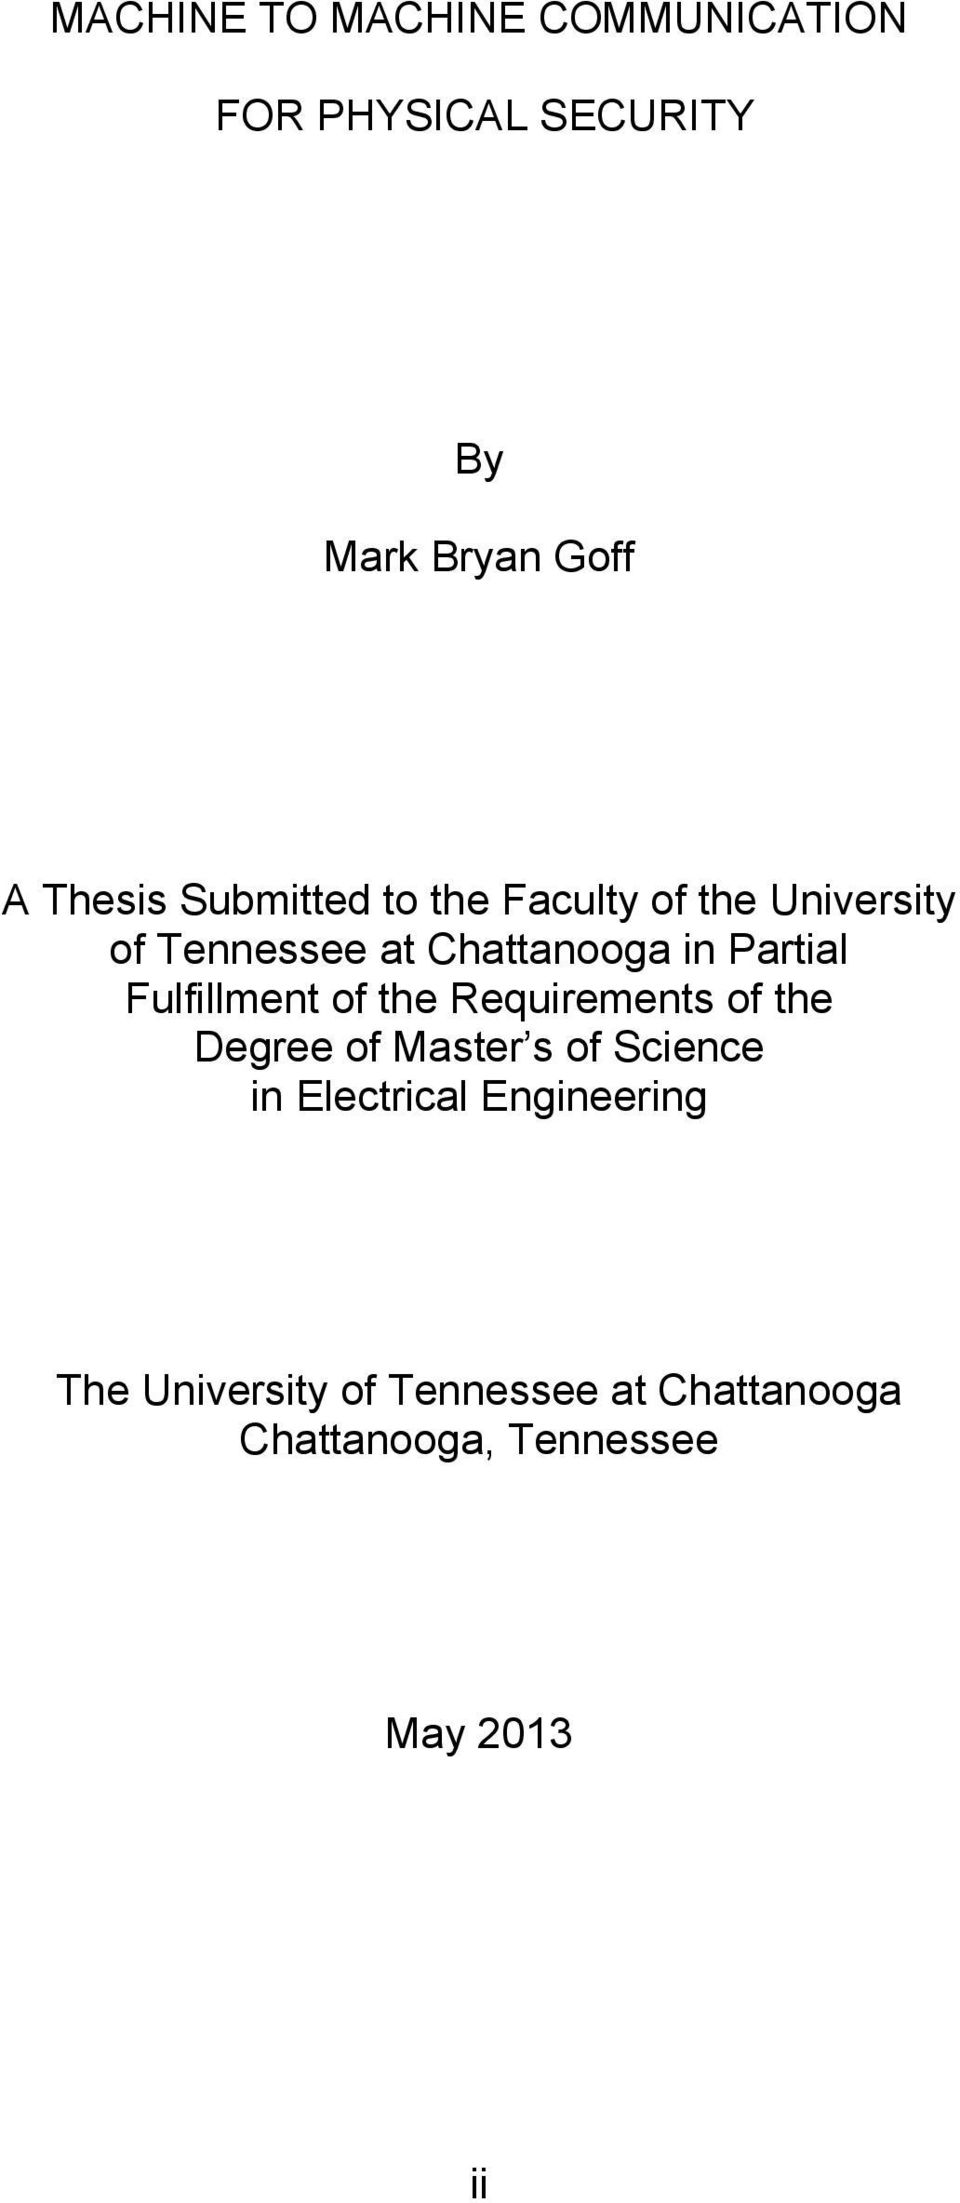 Fulfillment of the Requirements of the Degree of Master s of Science in Electrical